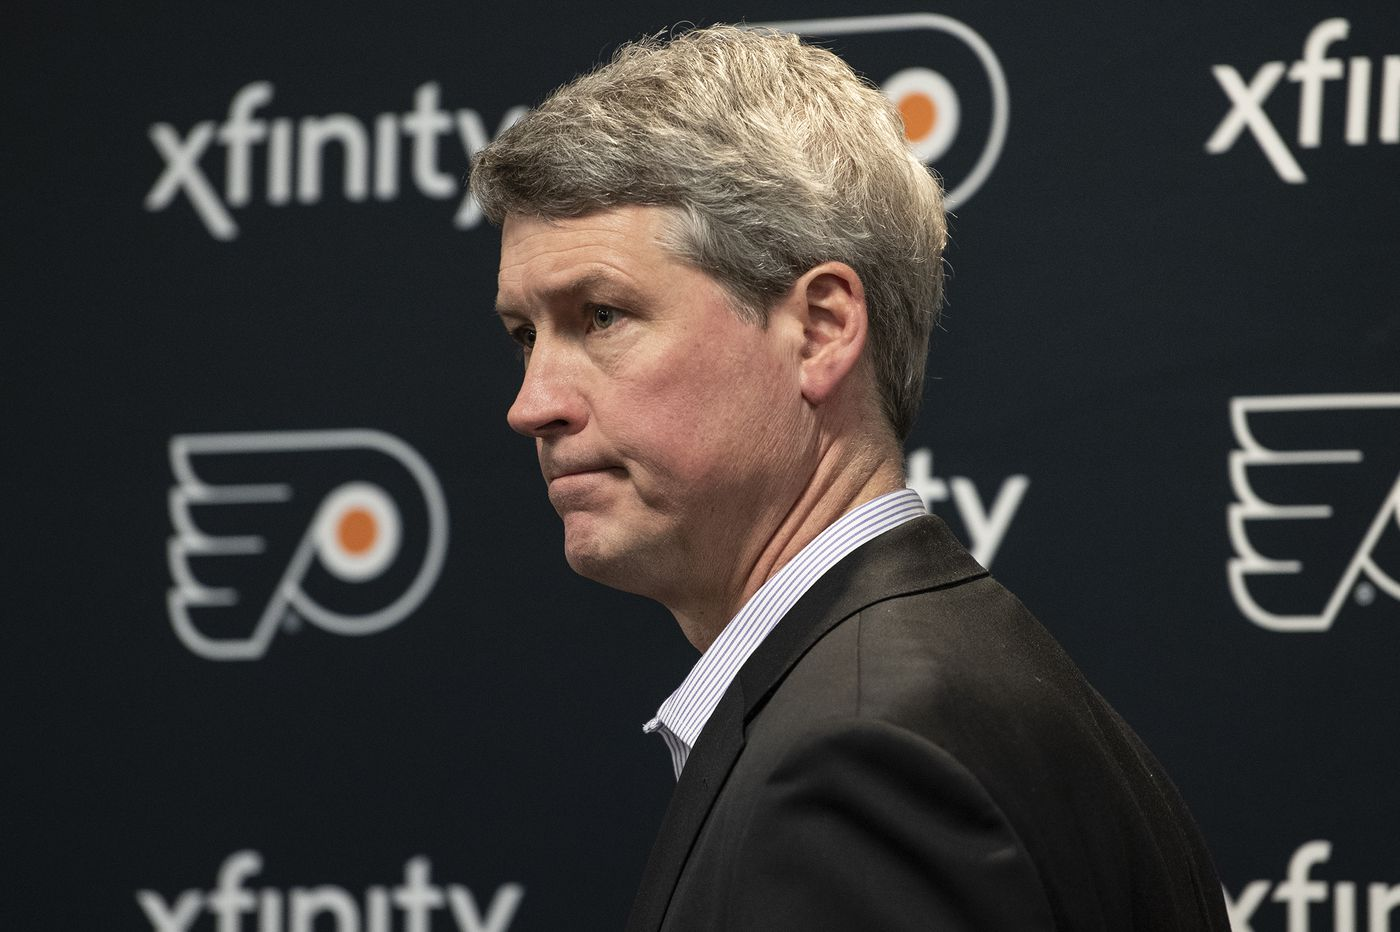 In hiring Alain Vigneault, Flyers GM Chuck Fletcher chooses the road well traveled   Sam Donnellon